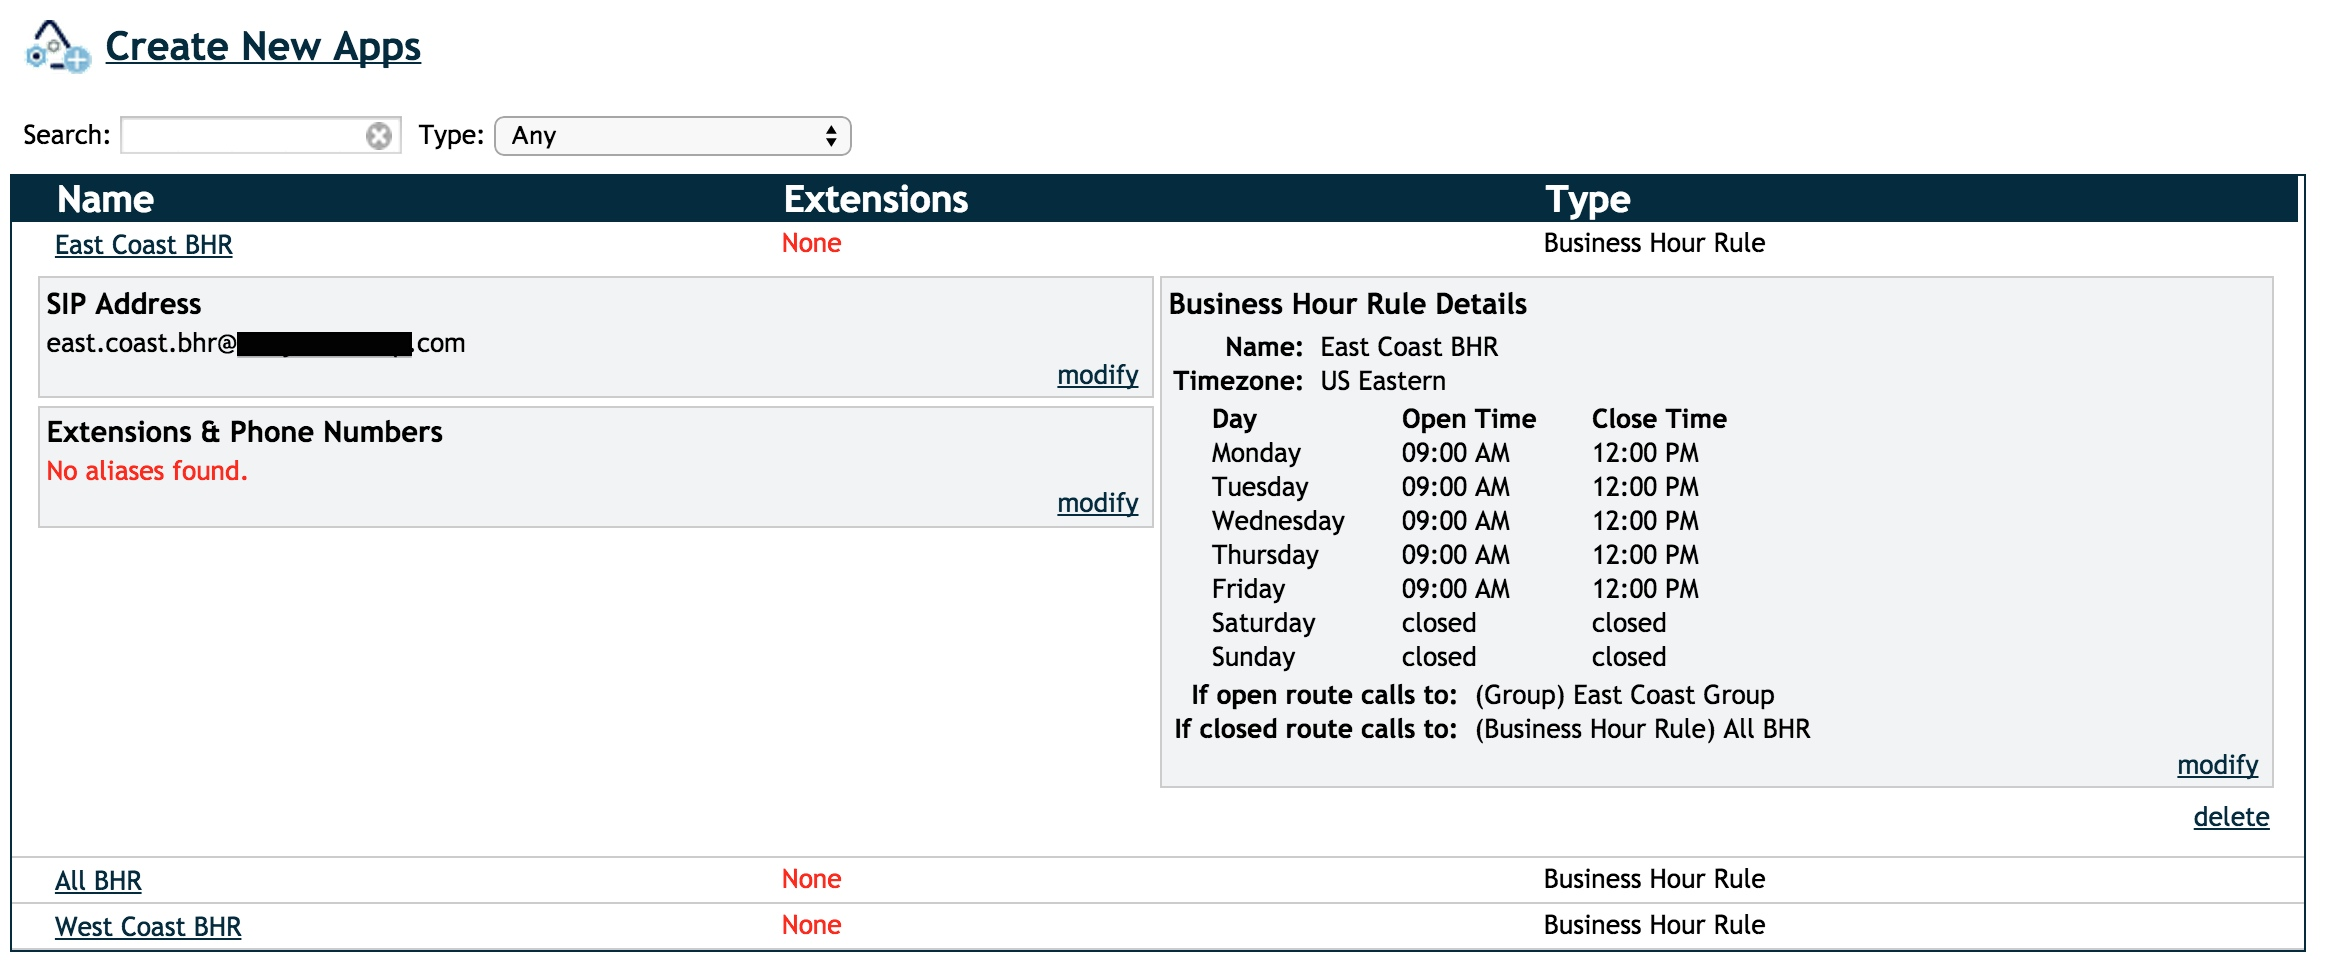 Screenshot showing business hour rule details.